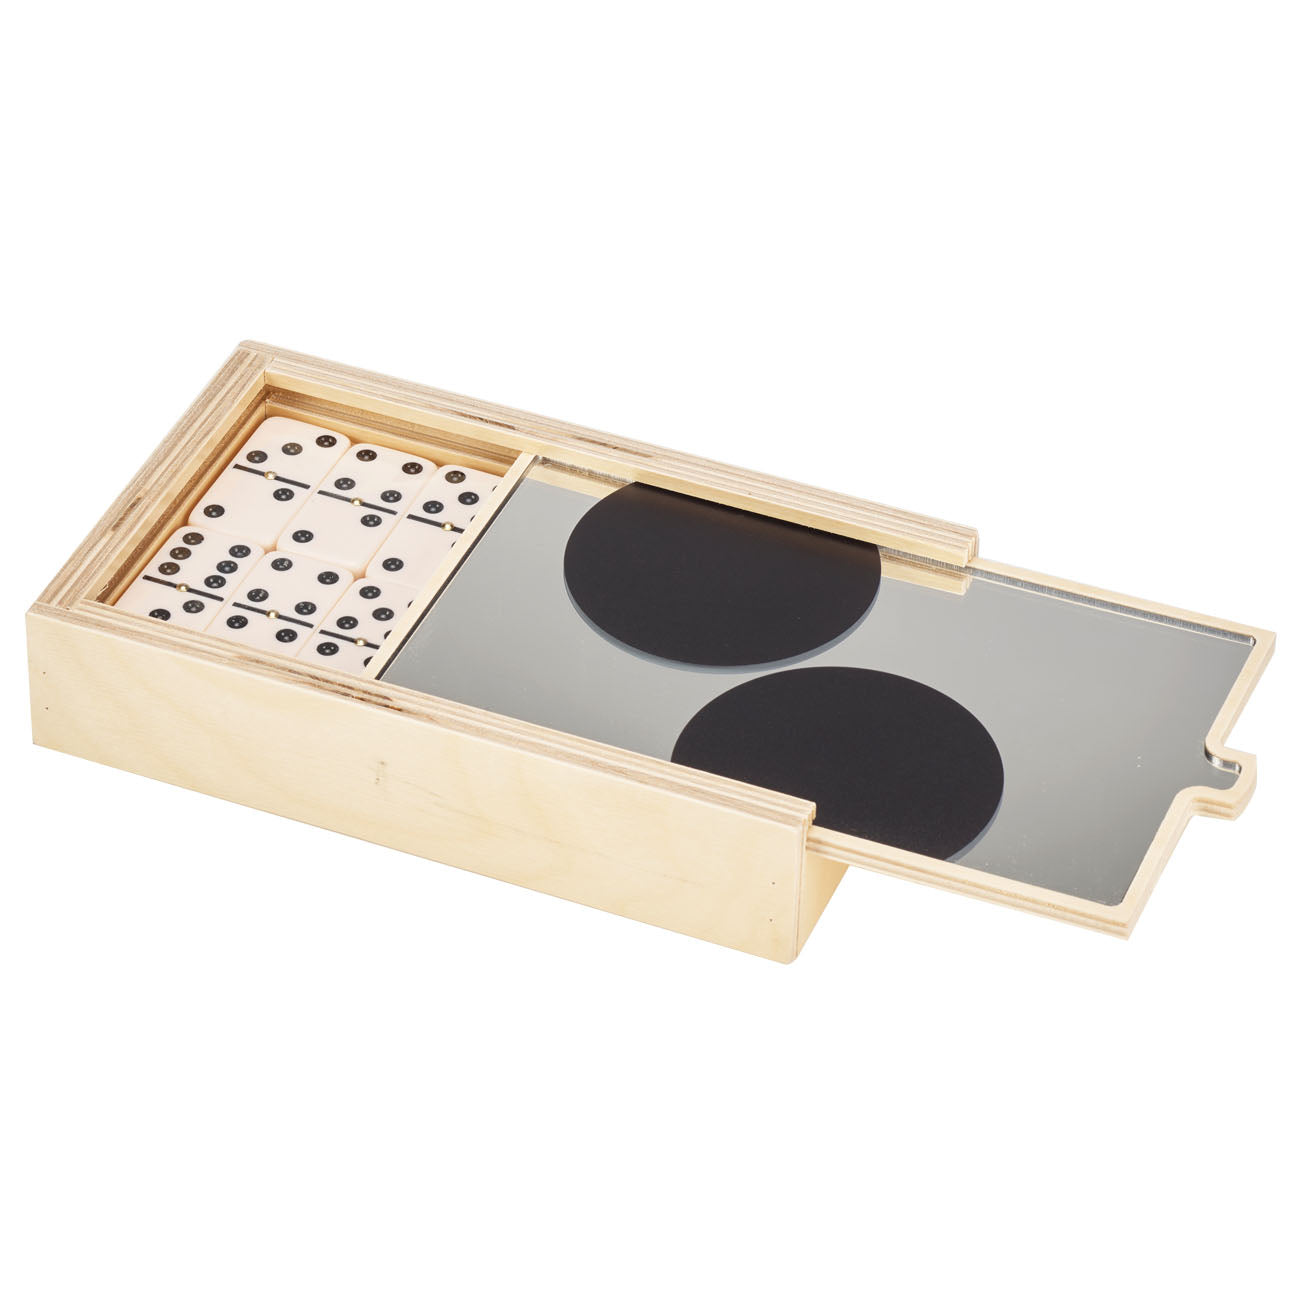 black dot MIRROR domino set- BRAND NEW!